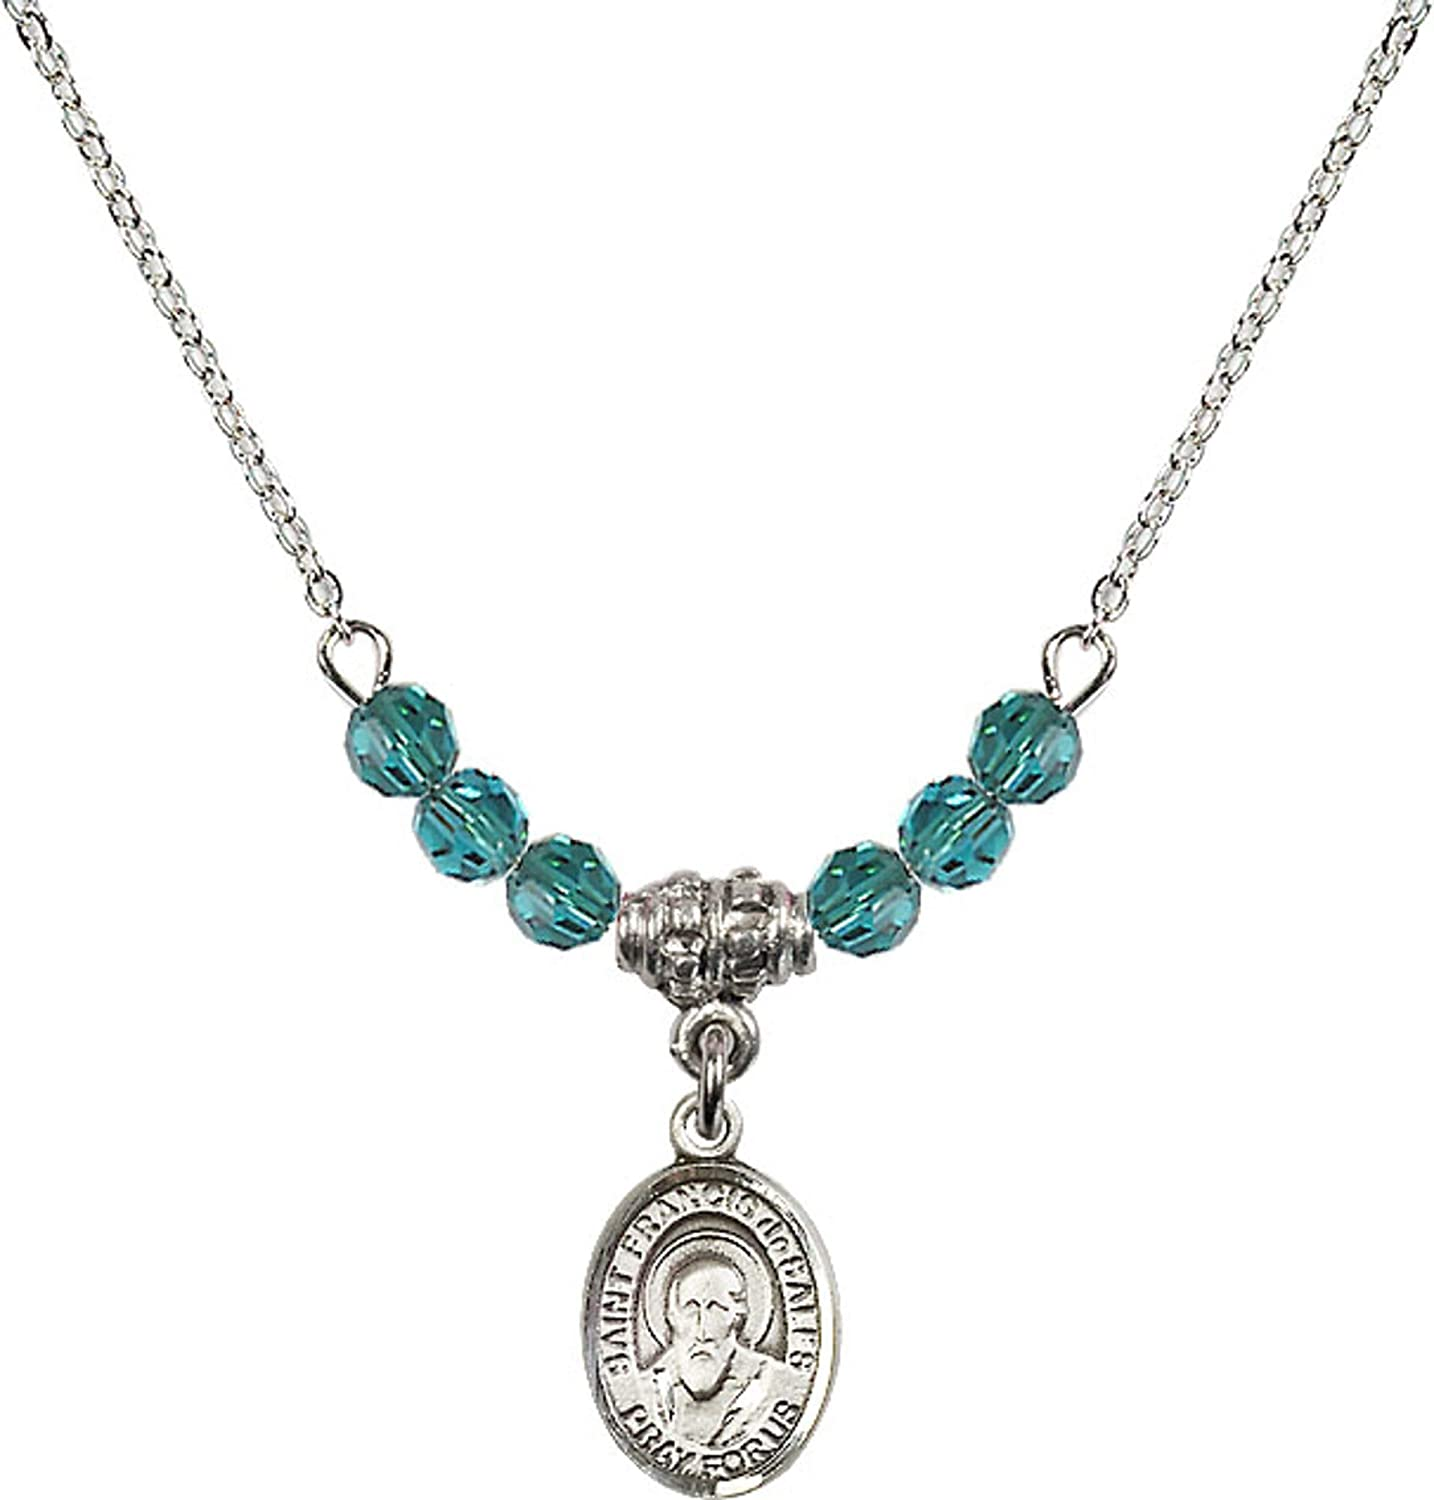 Bonyak Jewelry 18 Inch Rhodium Plated Necklace w// 4mm Blue December Birth Month Stone Beads and Saint Francis de Sales Charm